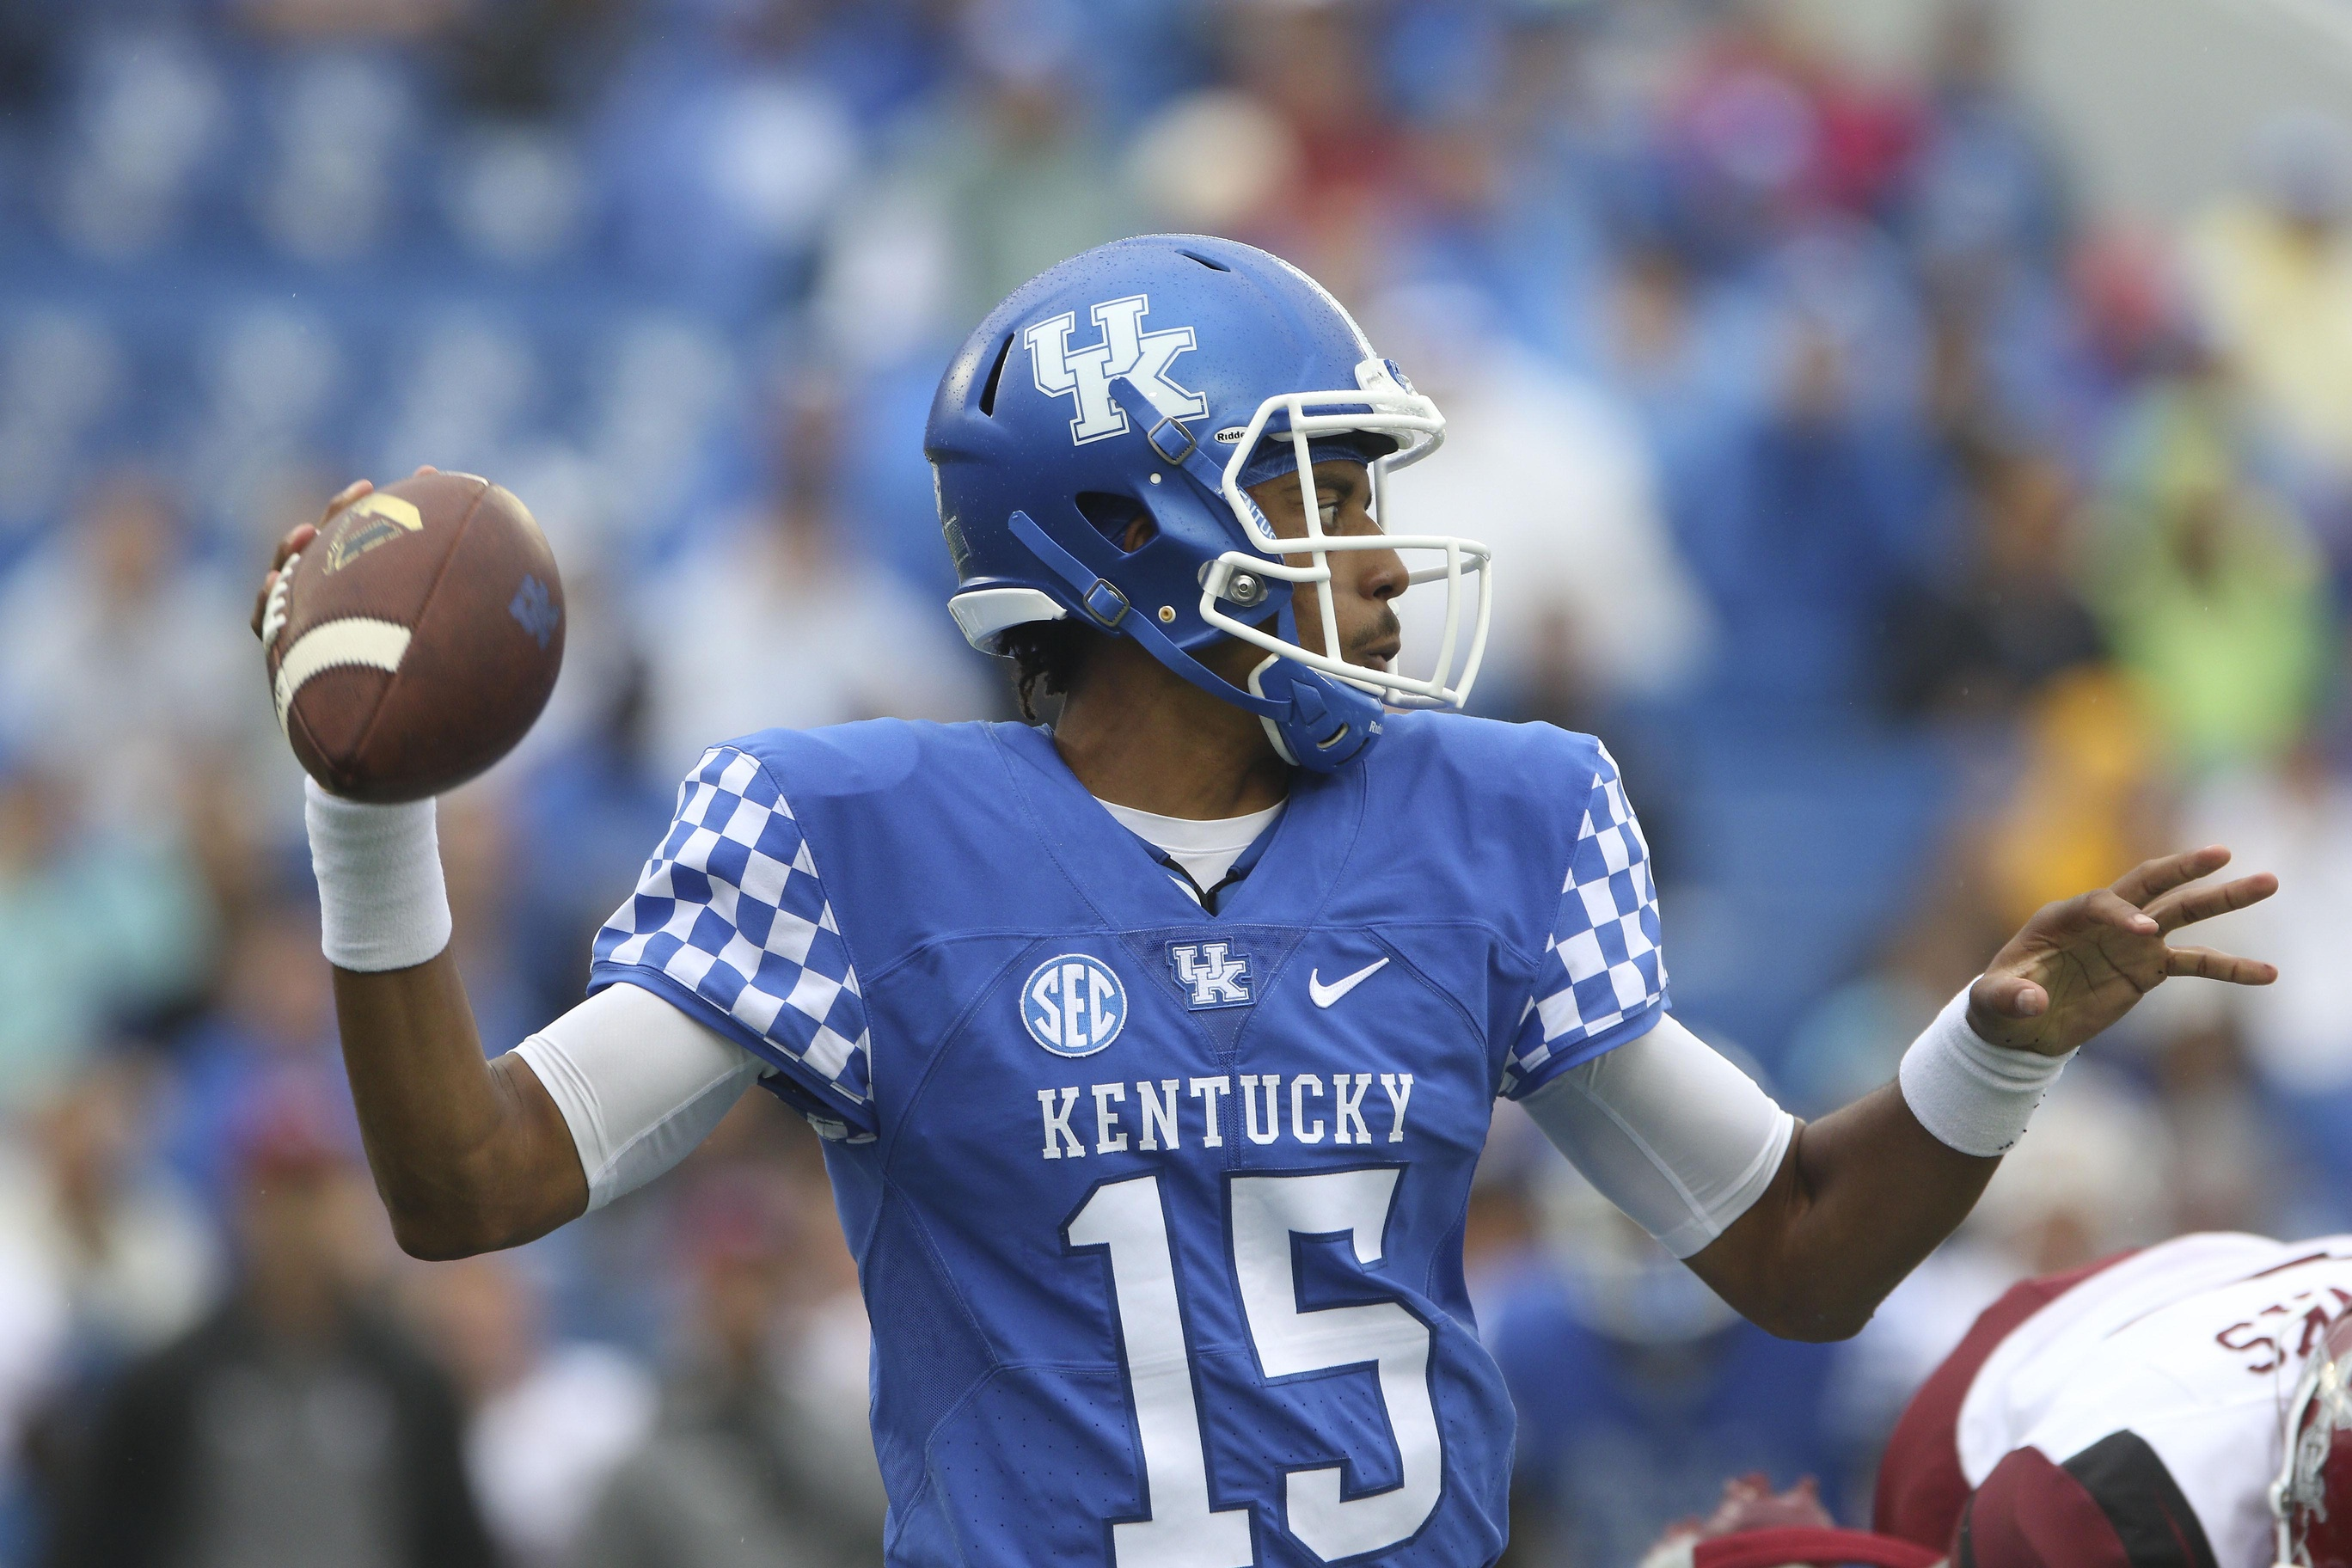 Sep 17, 2016; Lexington, KY, USA; Kentucky Wildcats quarterback Stephen Johnson (15) drops back to pass the ball against the New Mexico State Aggies in the first quarter at Commonwealth Stadium. Mandatory Credit: Mark Zerof-USA TODAY Sports